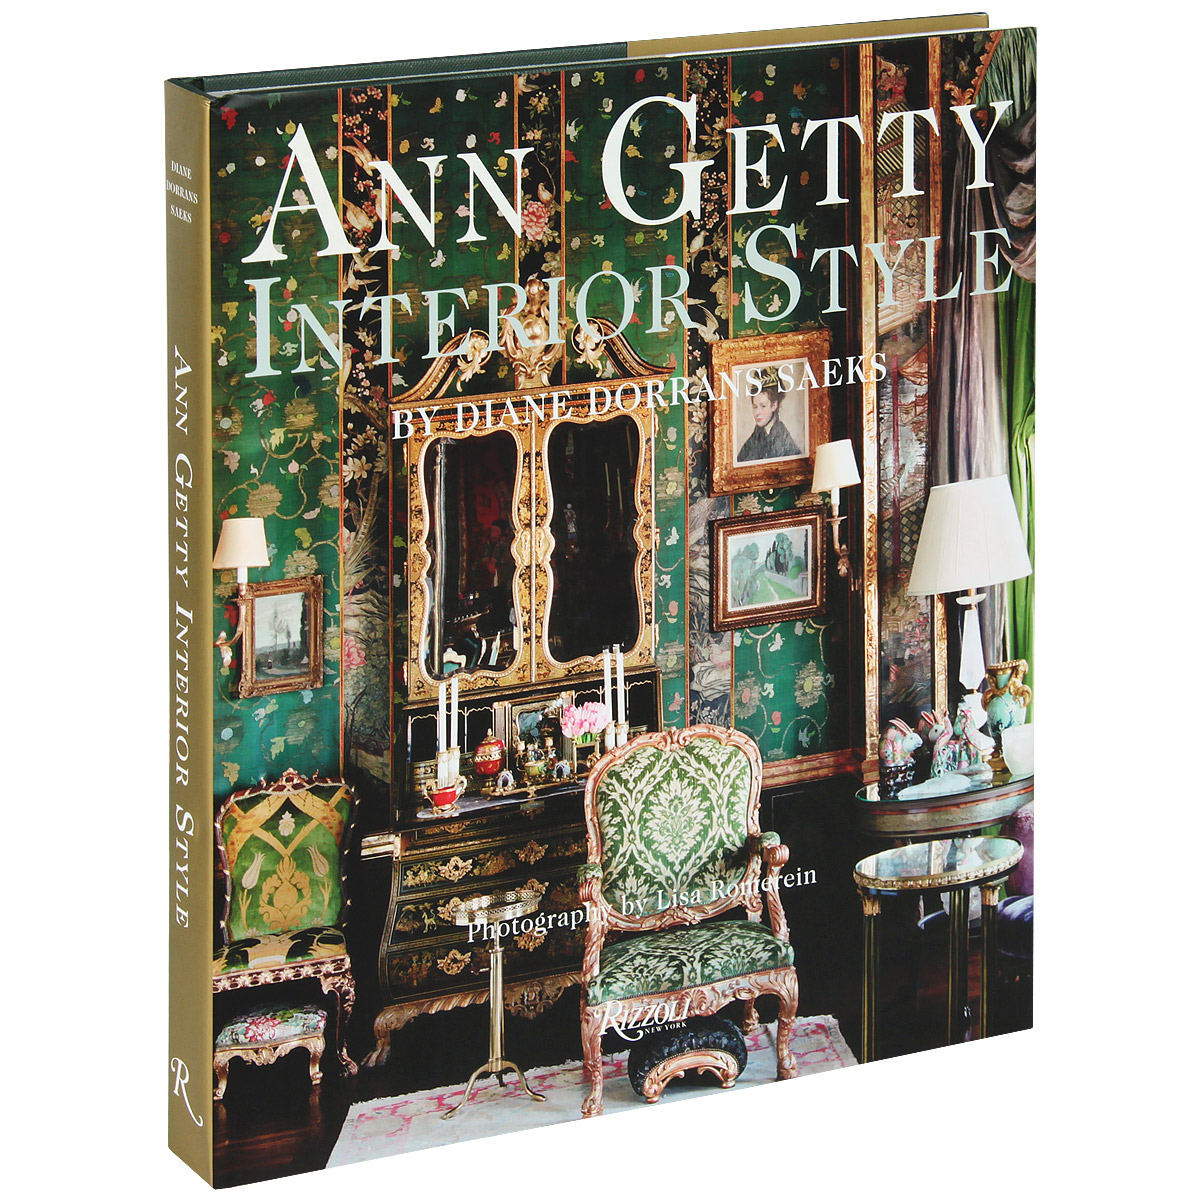 Ann Getty: Interior Style design thinking for interiors